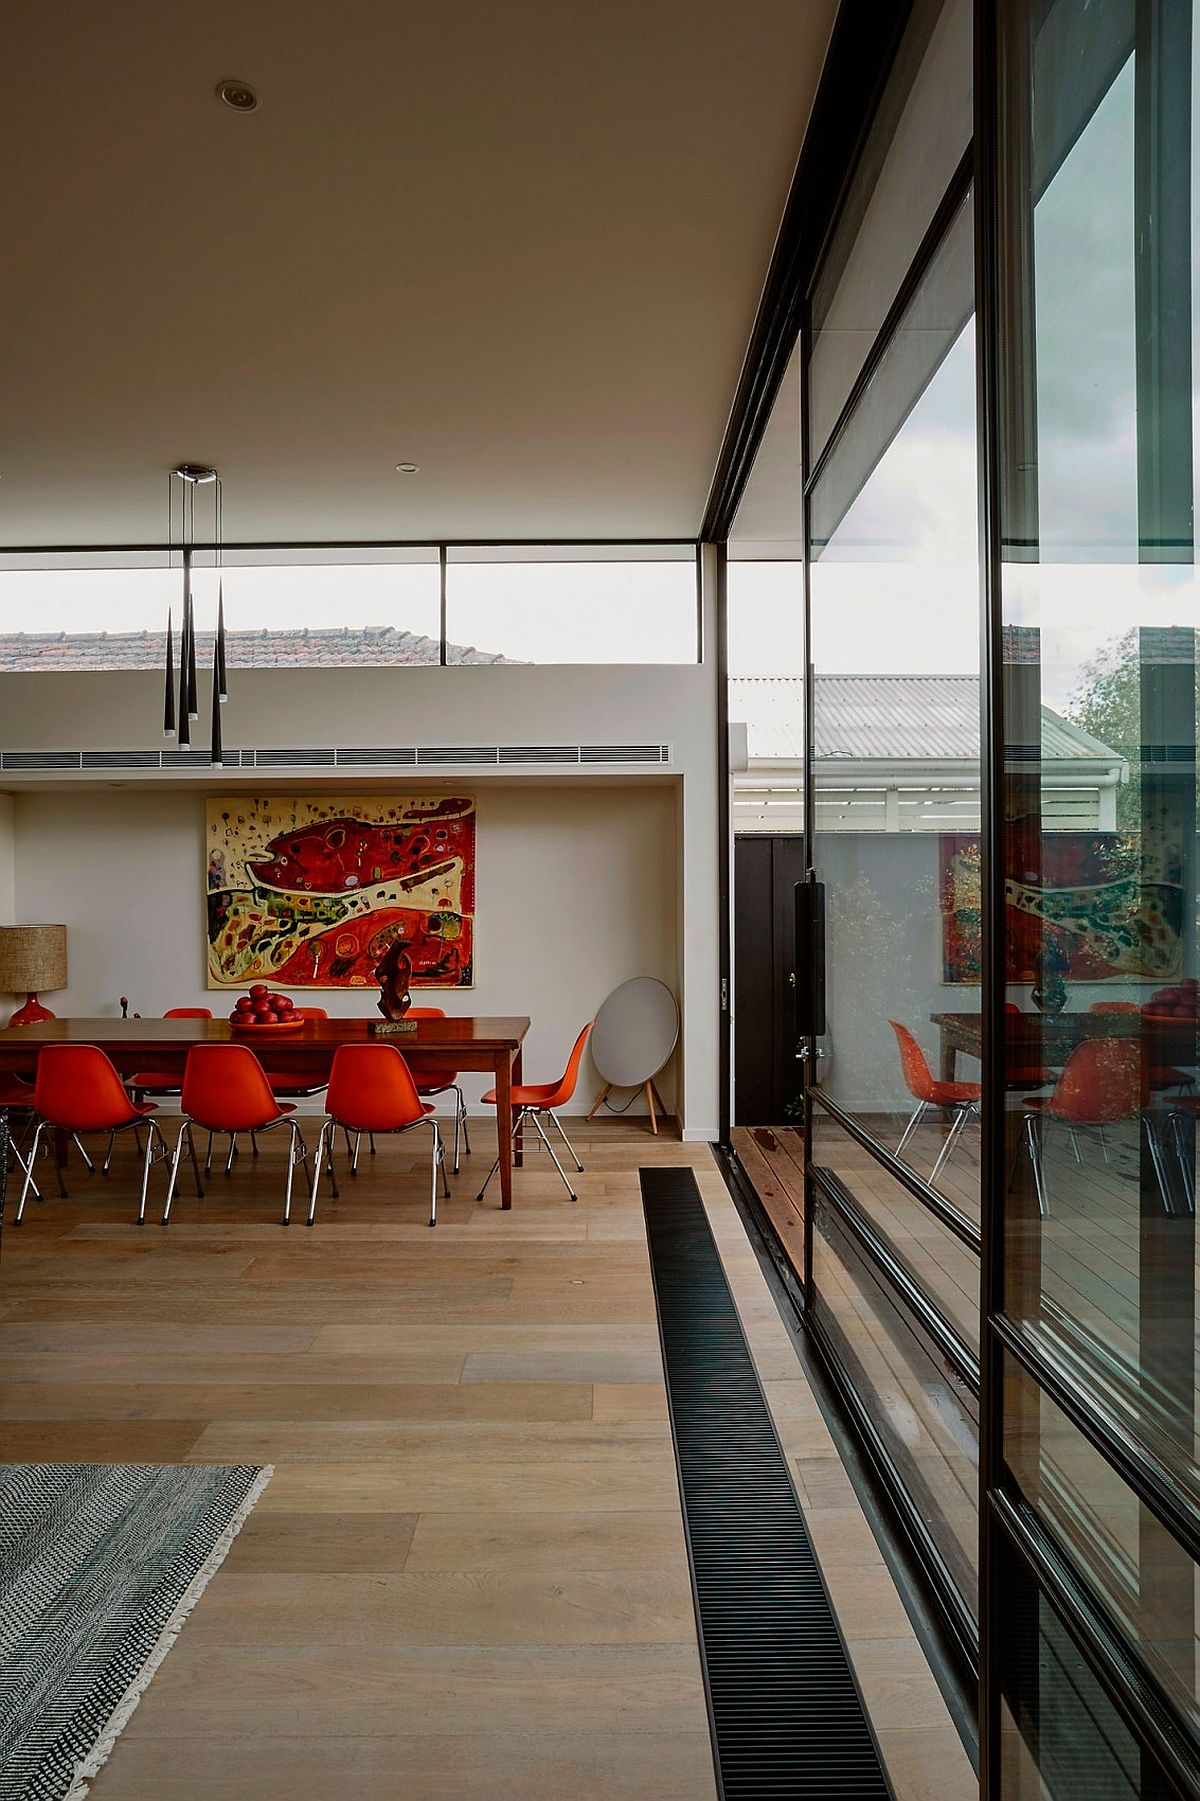 Bright orange chairs and art work add color to the neutral dining space